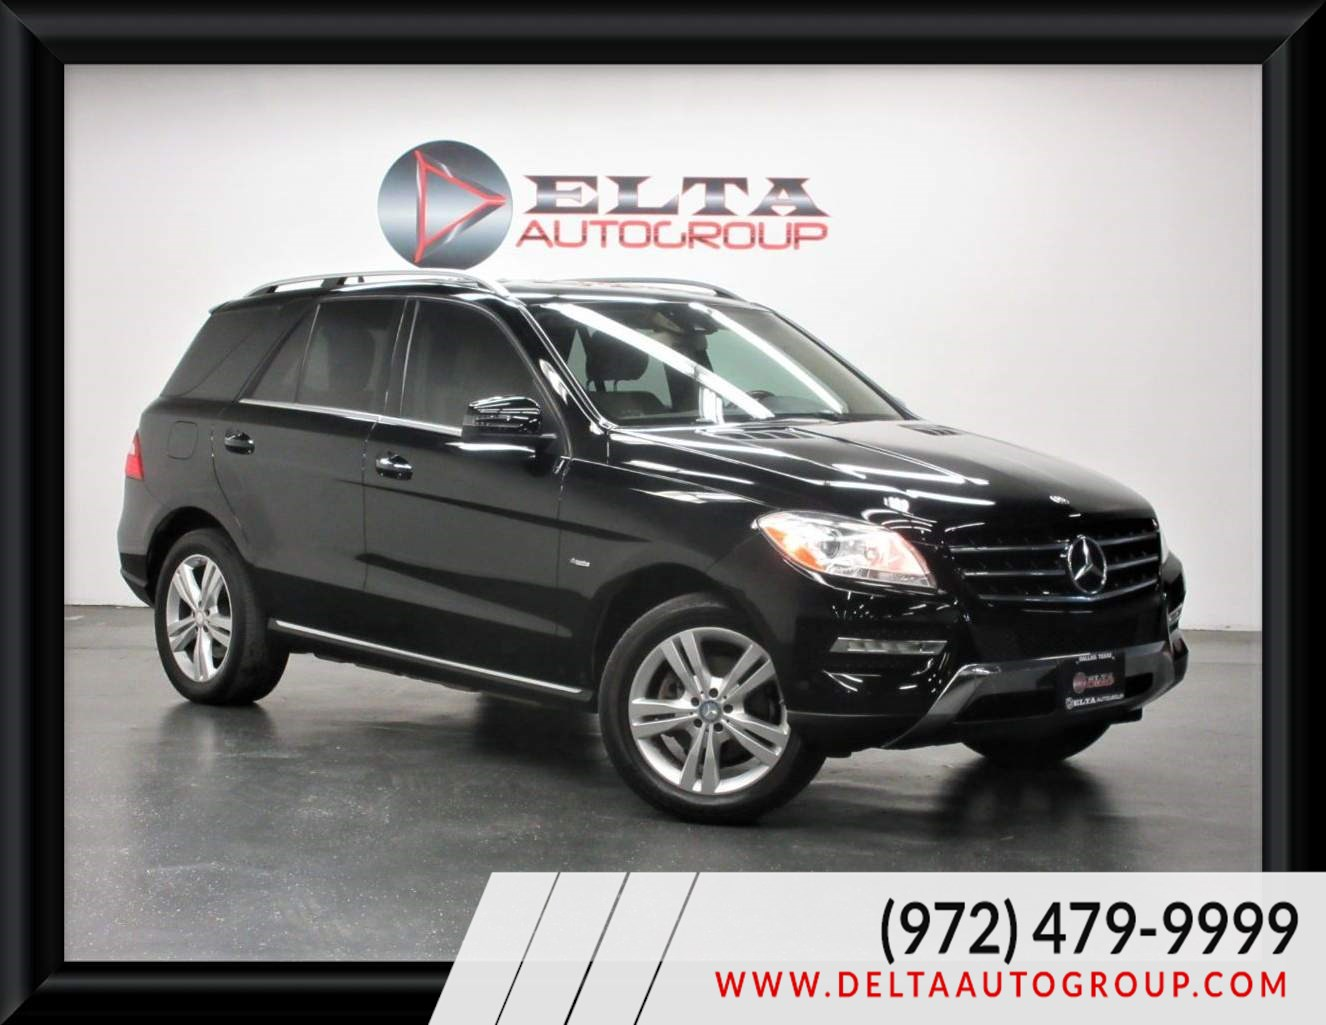 2012 Mercedes-Benz ML 350 4MATIC NAVIGATION ROOF CAMERA LOW MILES